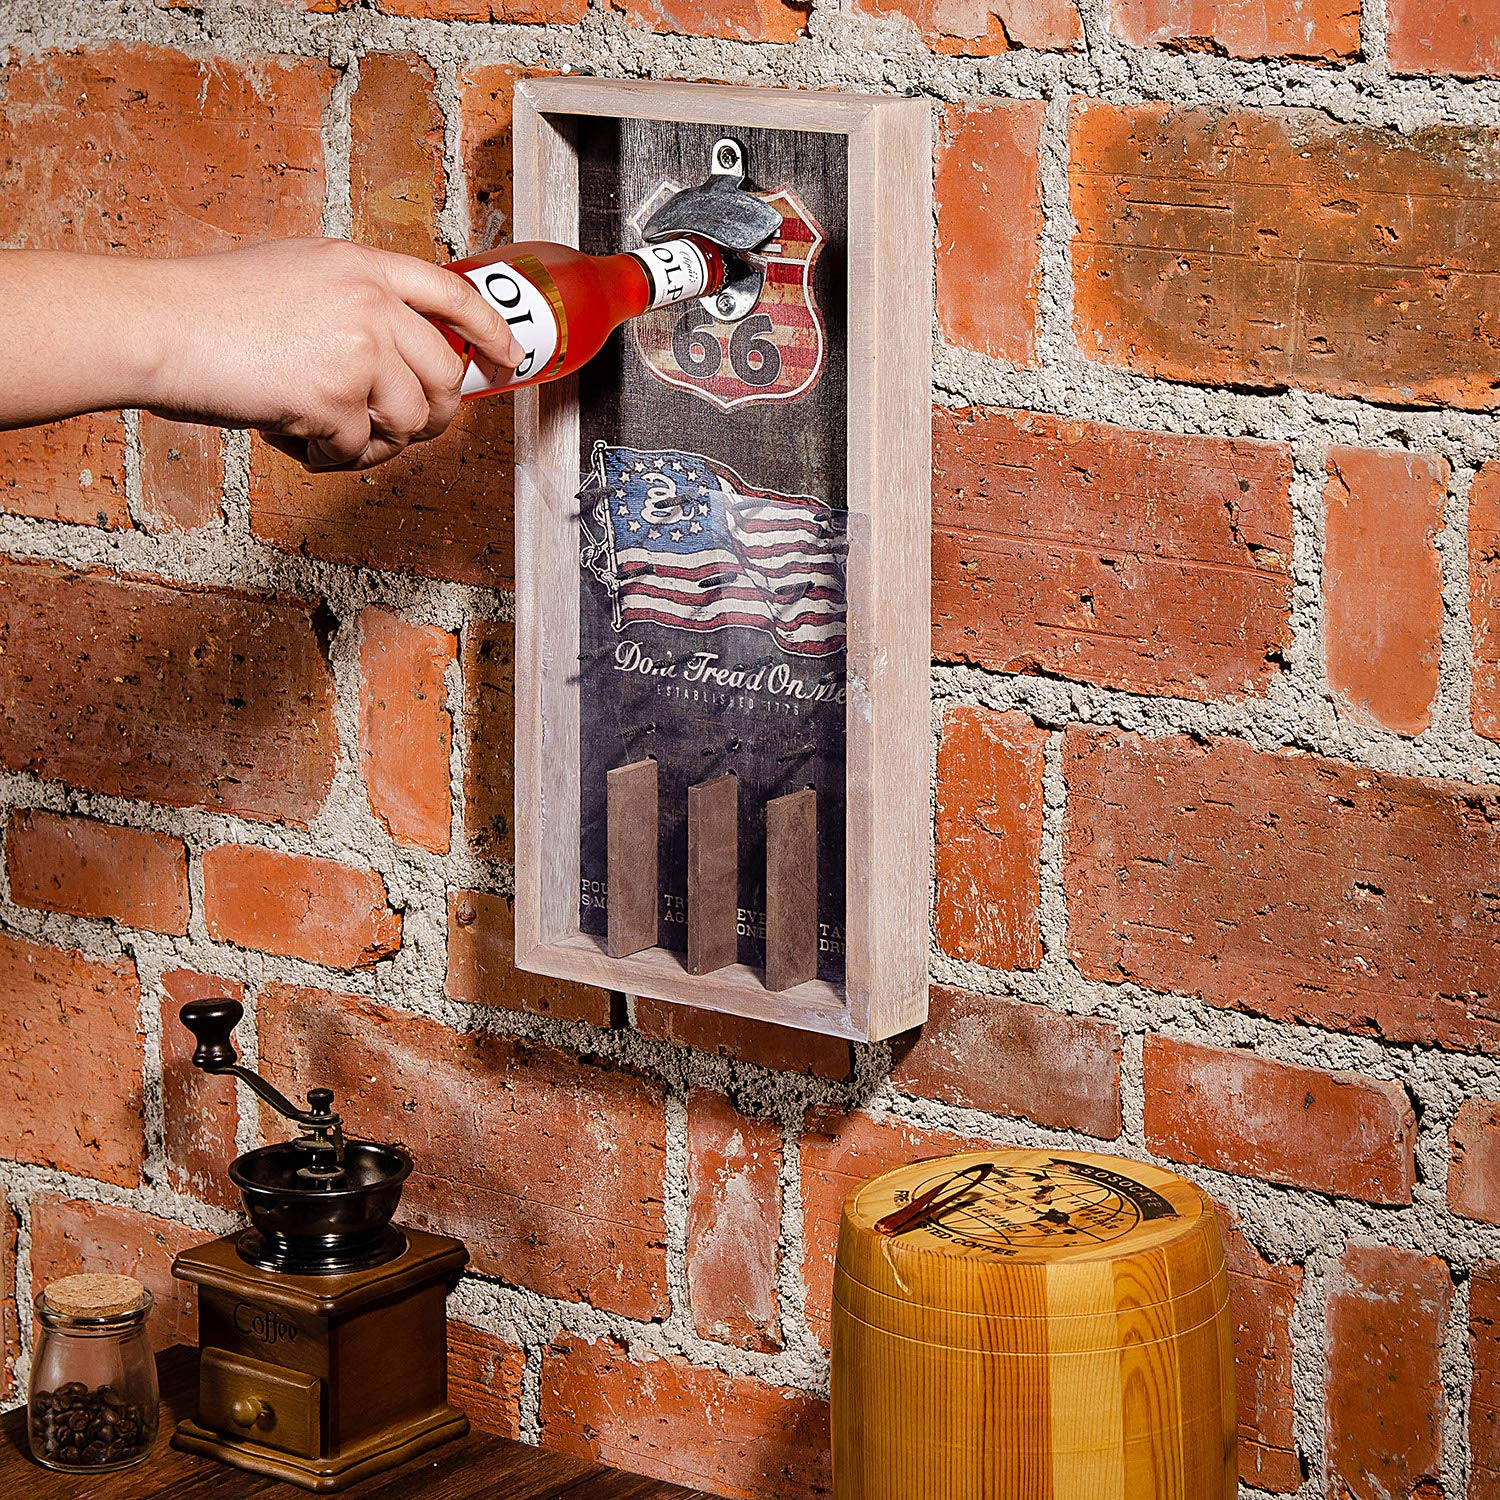 American Flag Liry Products Vintage Rustic Wall Mount Beer Bottle Opener Wood Plaque Pinball Table Arcade Game Cap Catcher Holder Retro Decor Bar Restaurant Home Kitchen